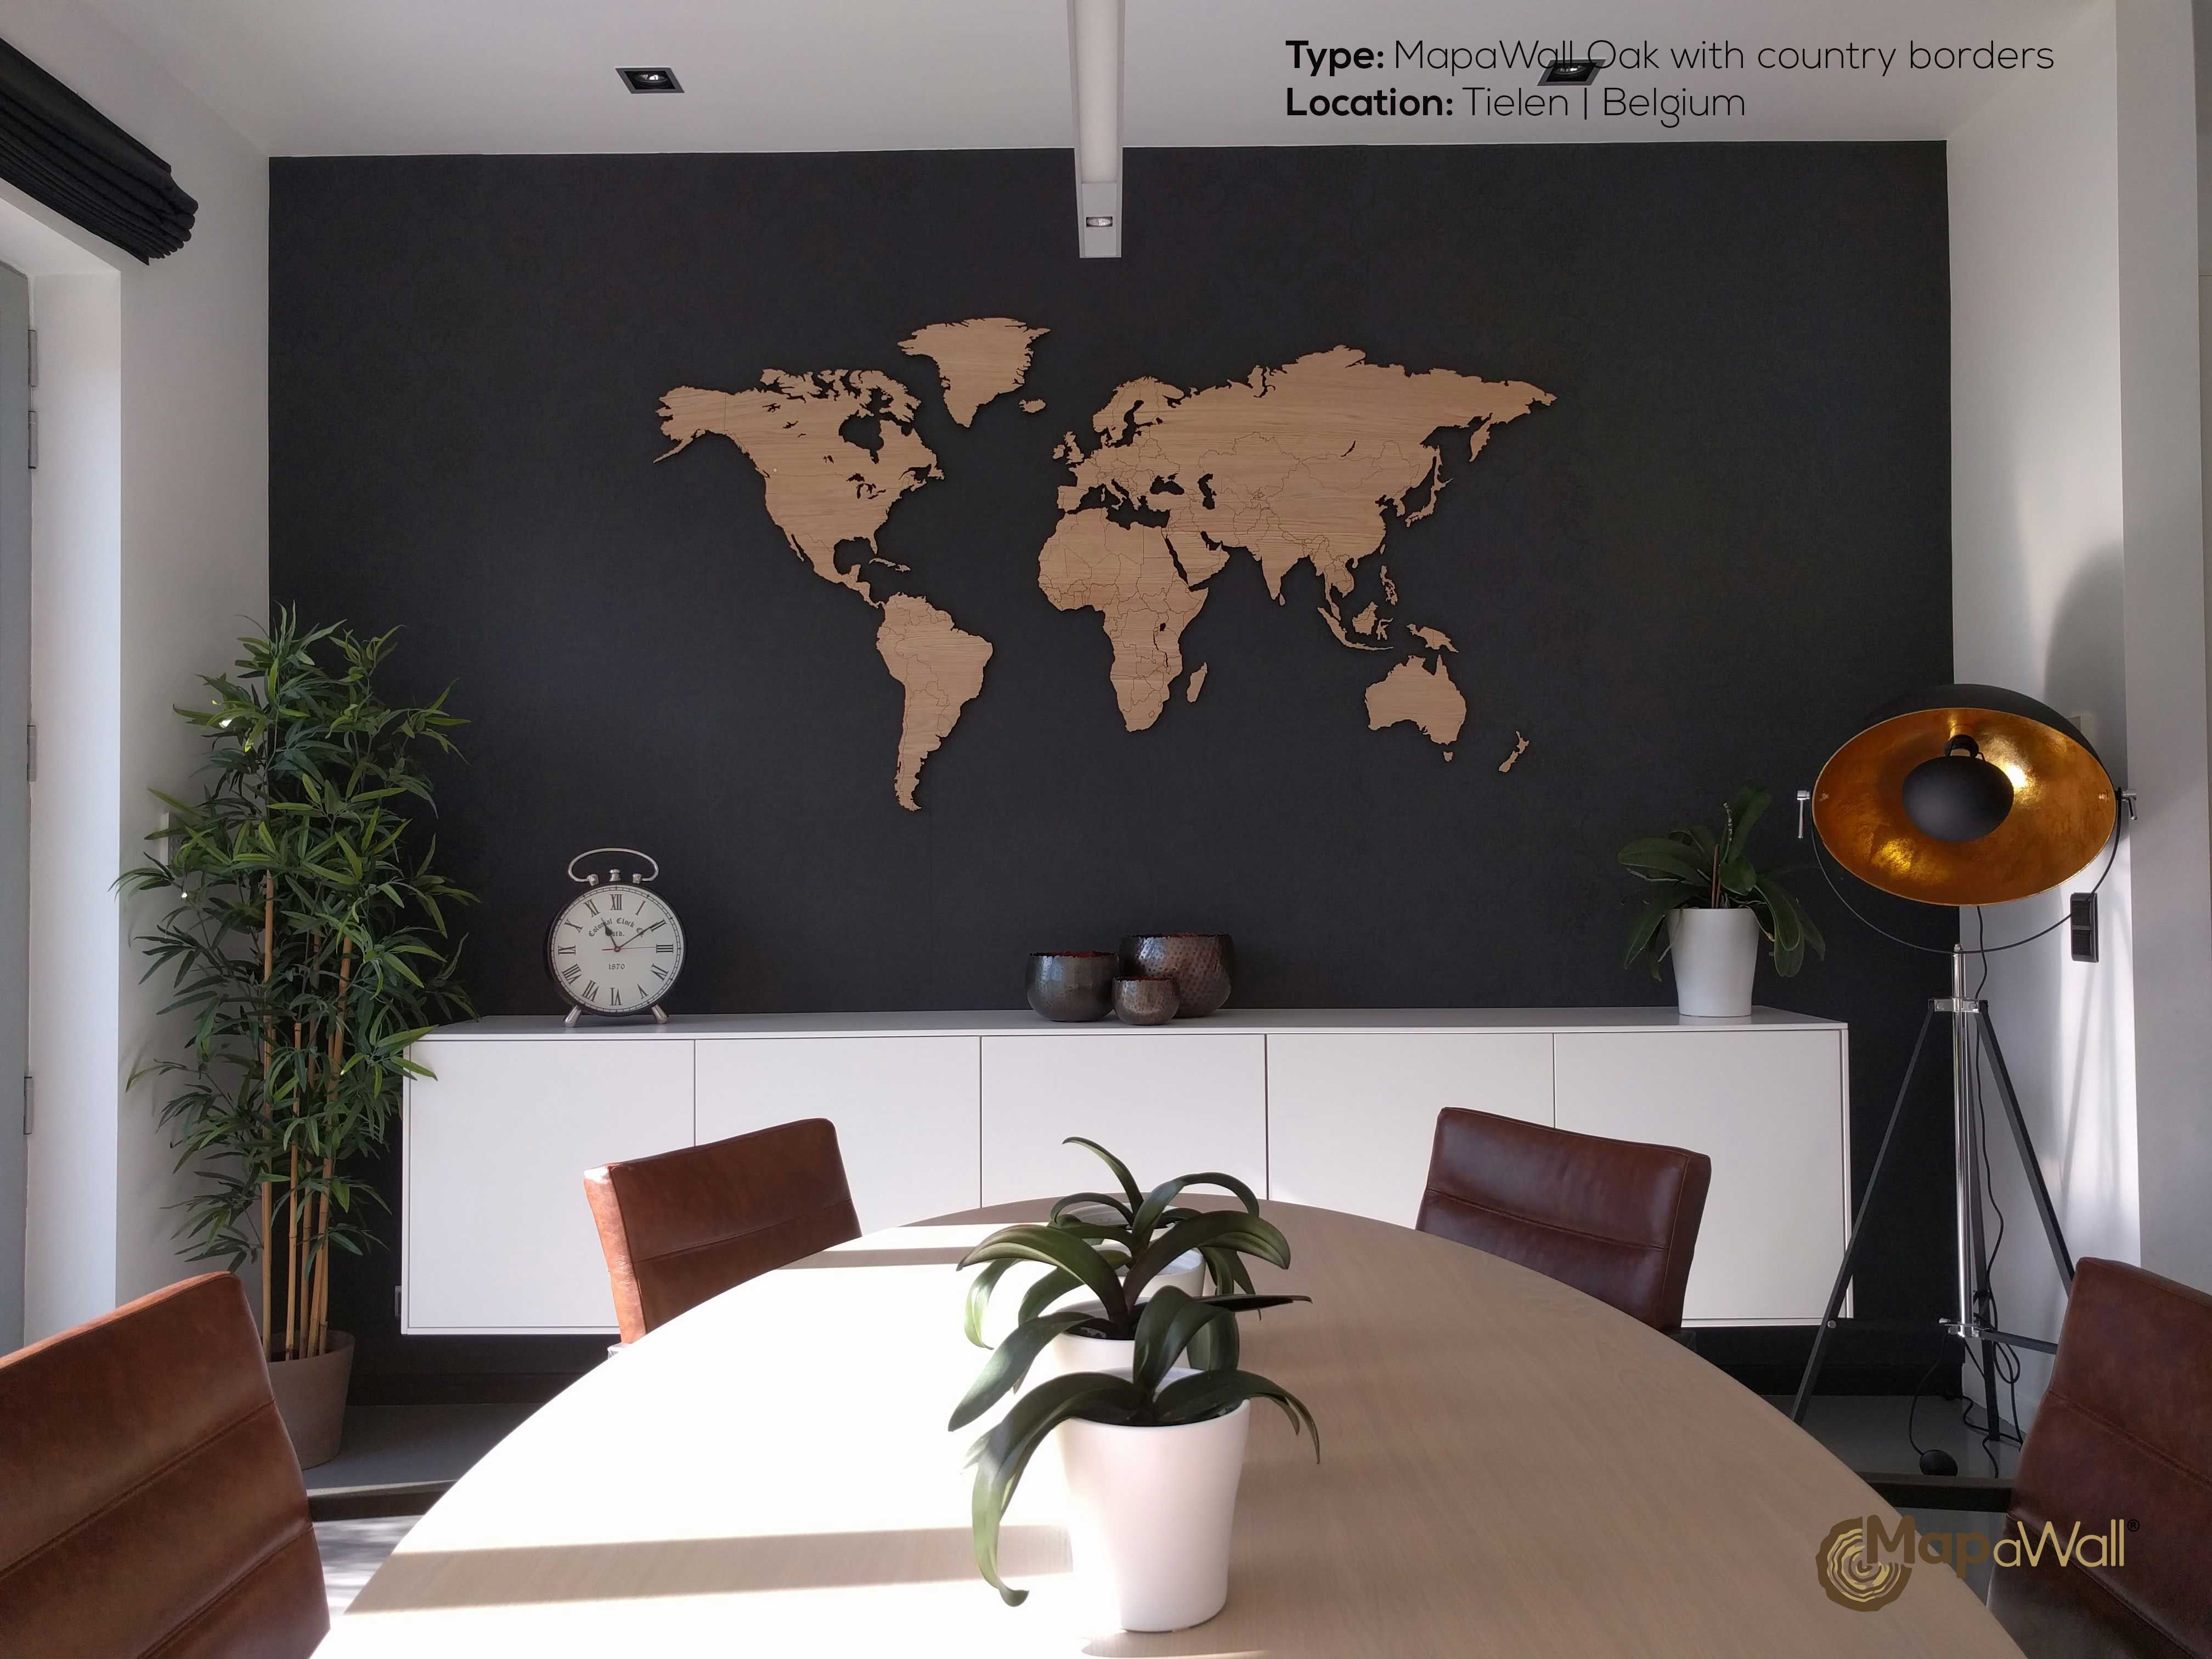 World map oak dark walls walls and lights the mapawall shown here is our oak world map with country borders placing the map on a dark wall really brings out the highly detailed borders of the gumiabroncs Images